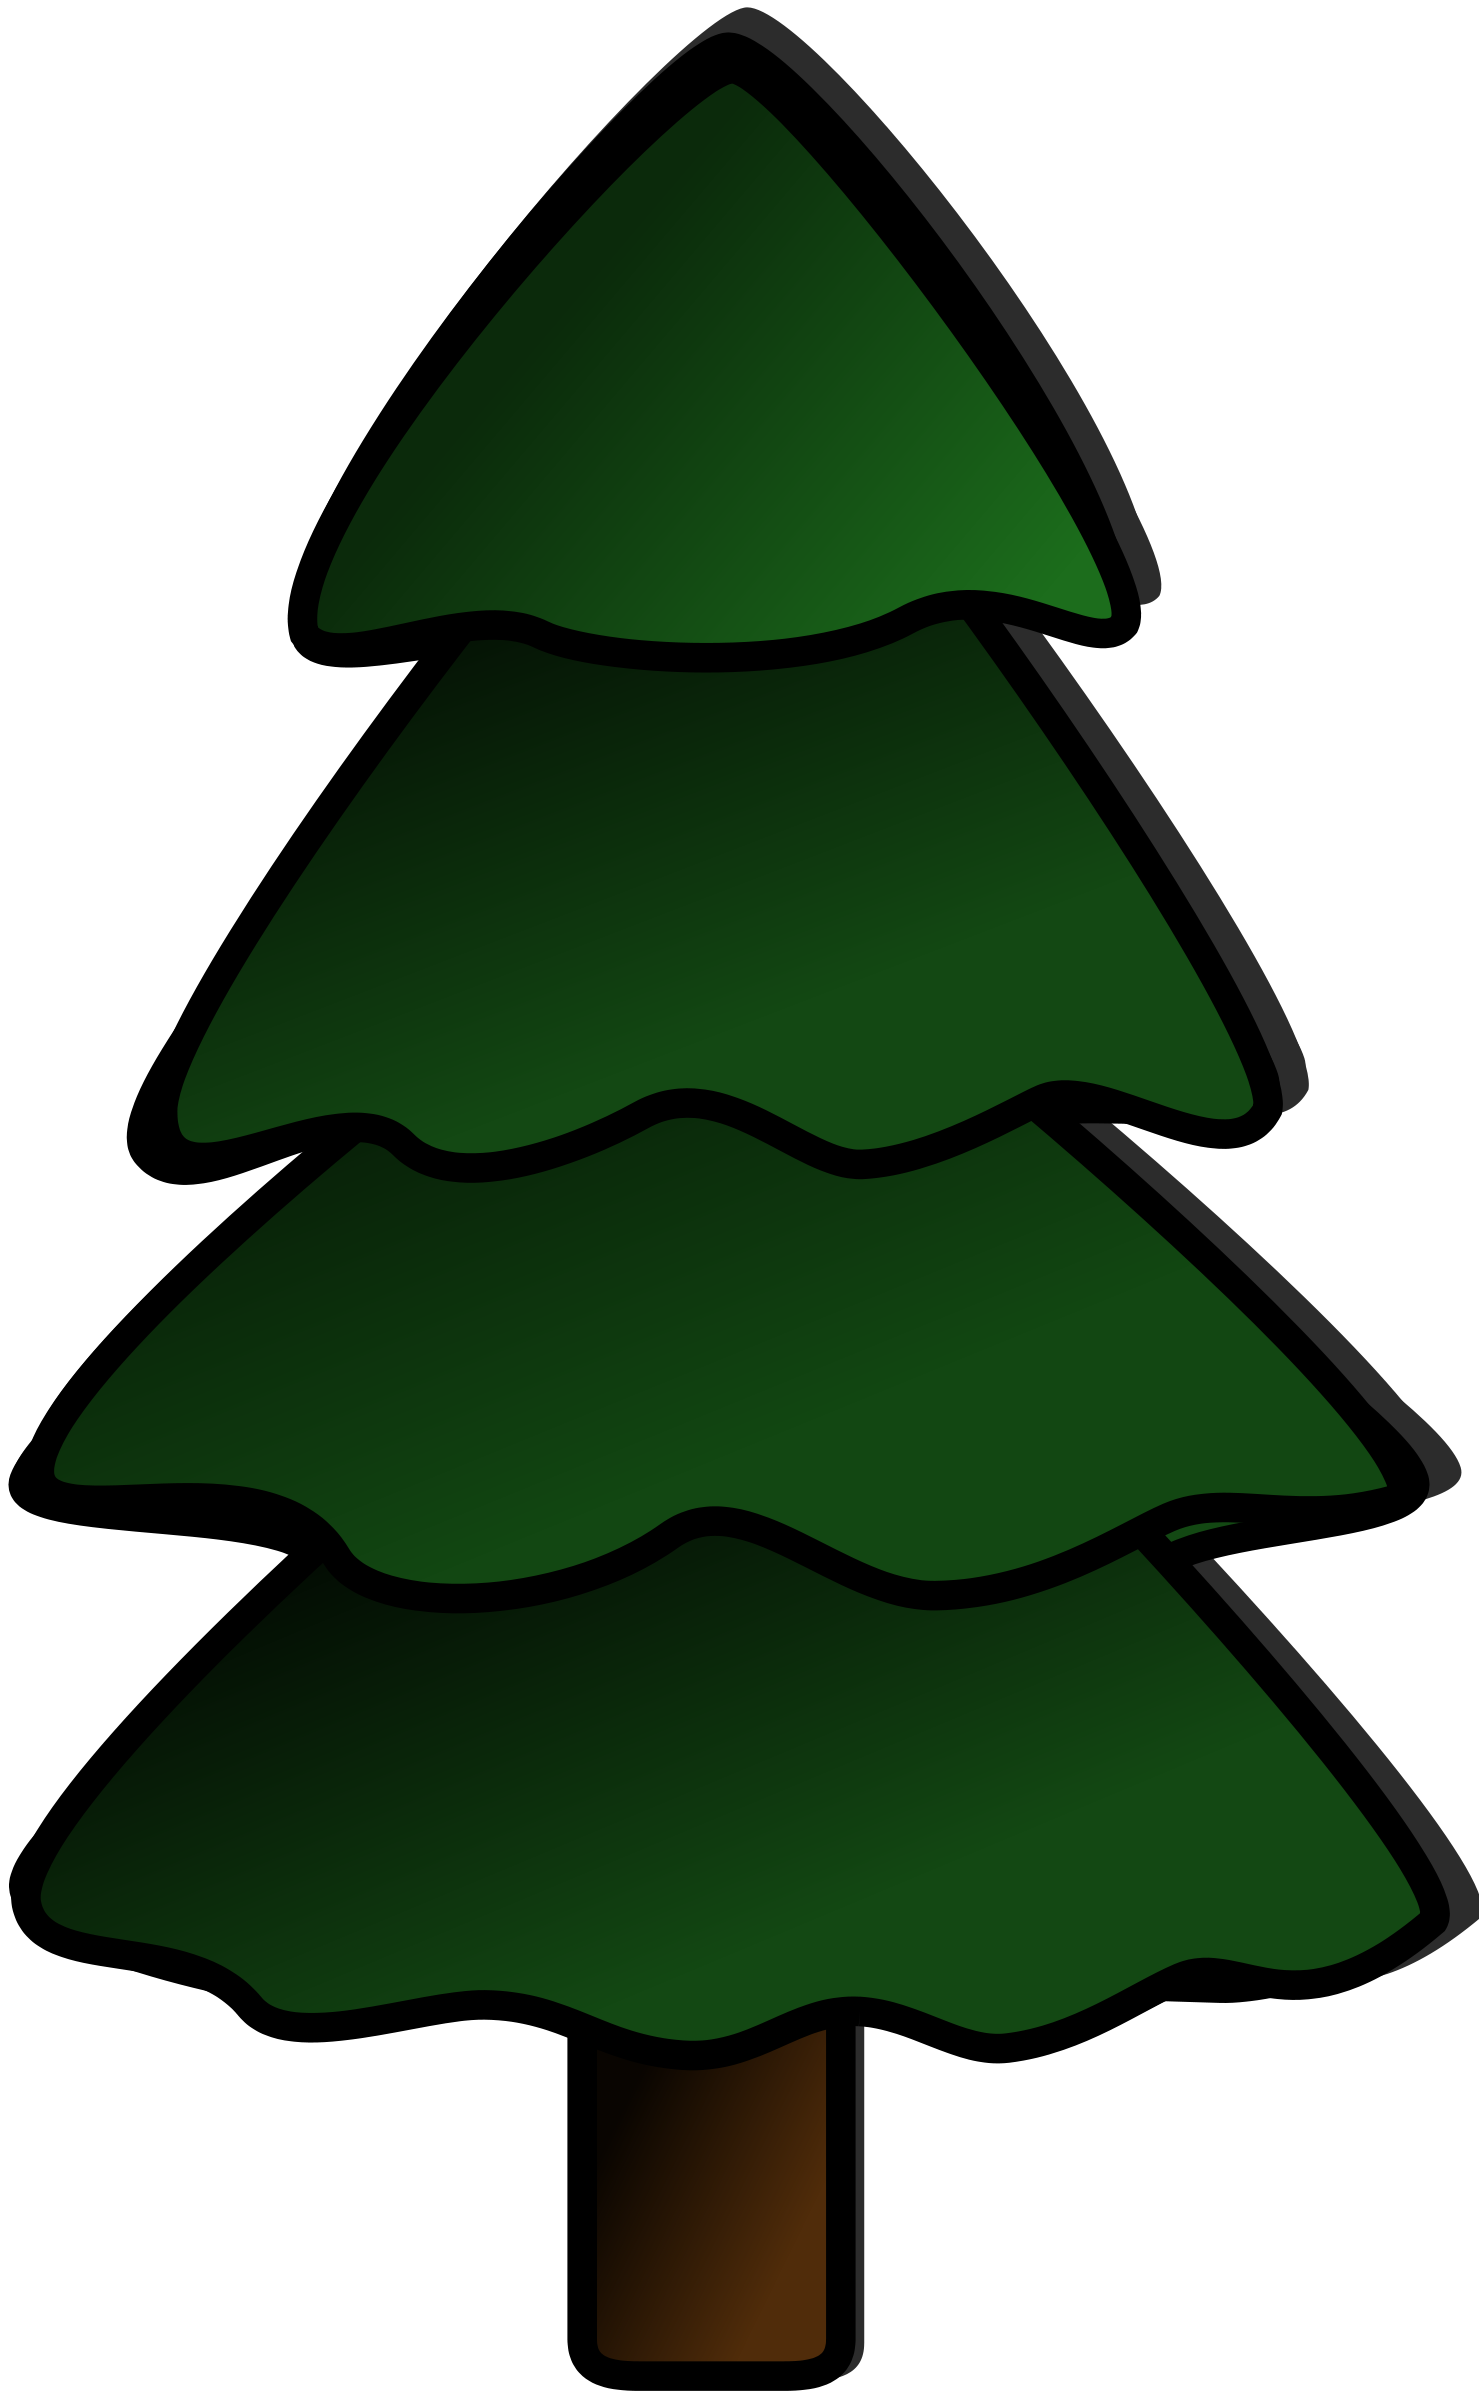 Pine Trees Transparent Png Clipart Free Download Ya Webdesign